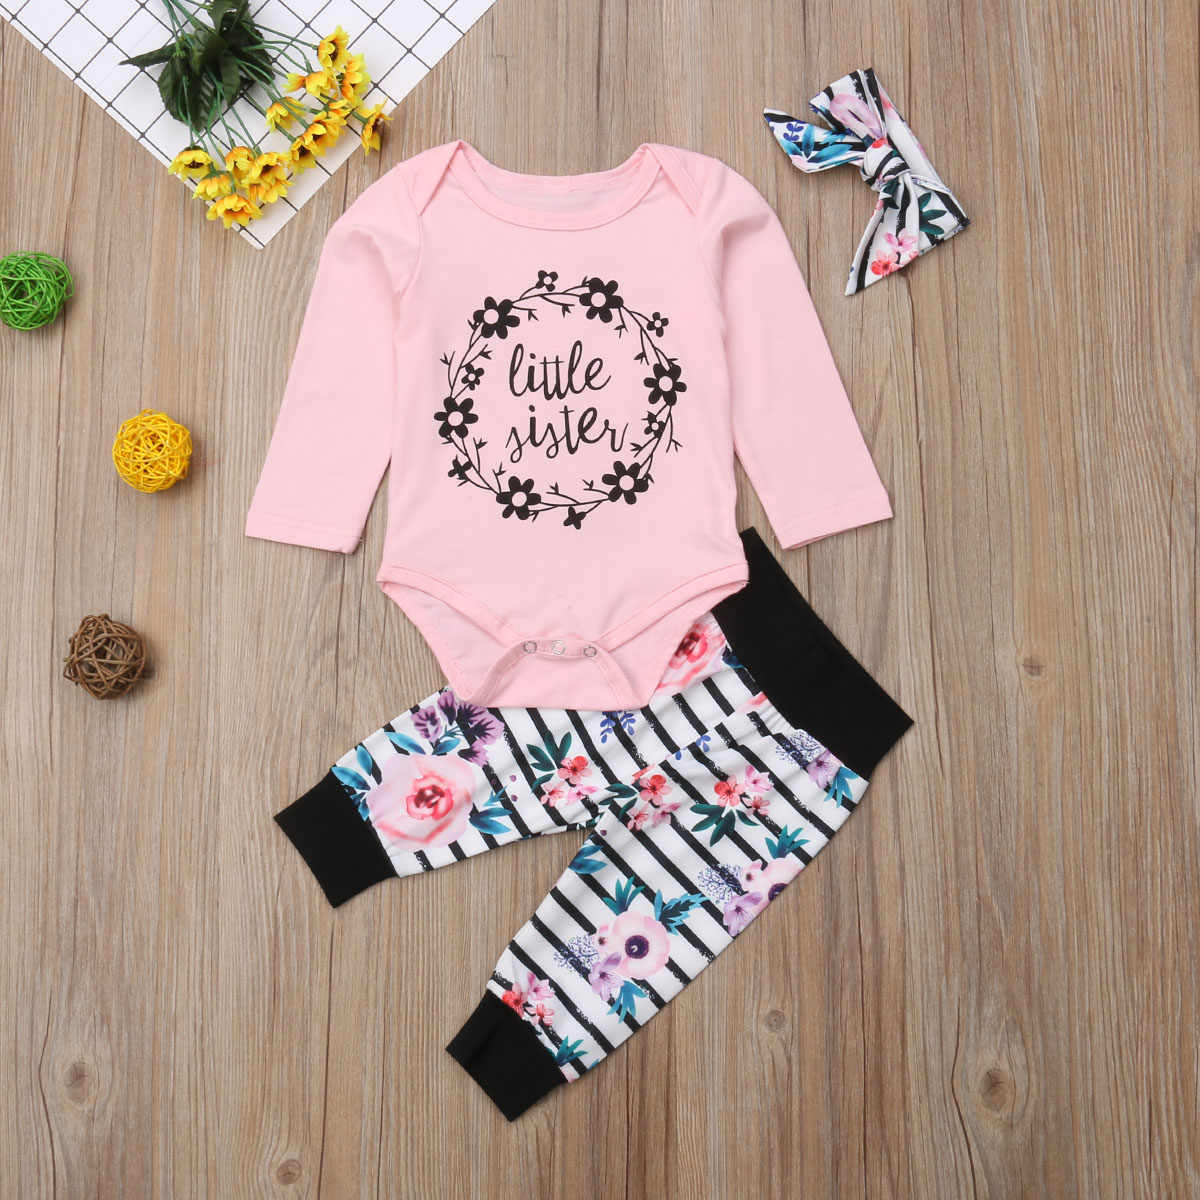 c7c4127493e5 Detail Feedback Questions about Family Clothes Set Sister Newborn ...